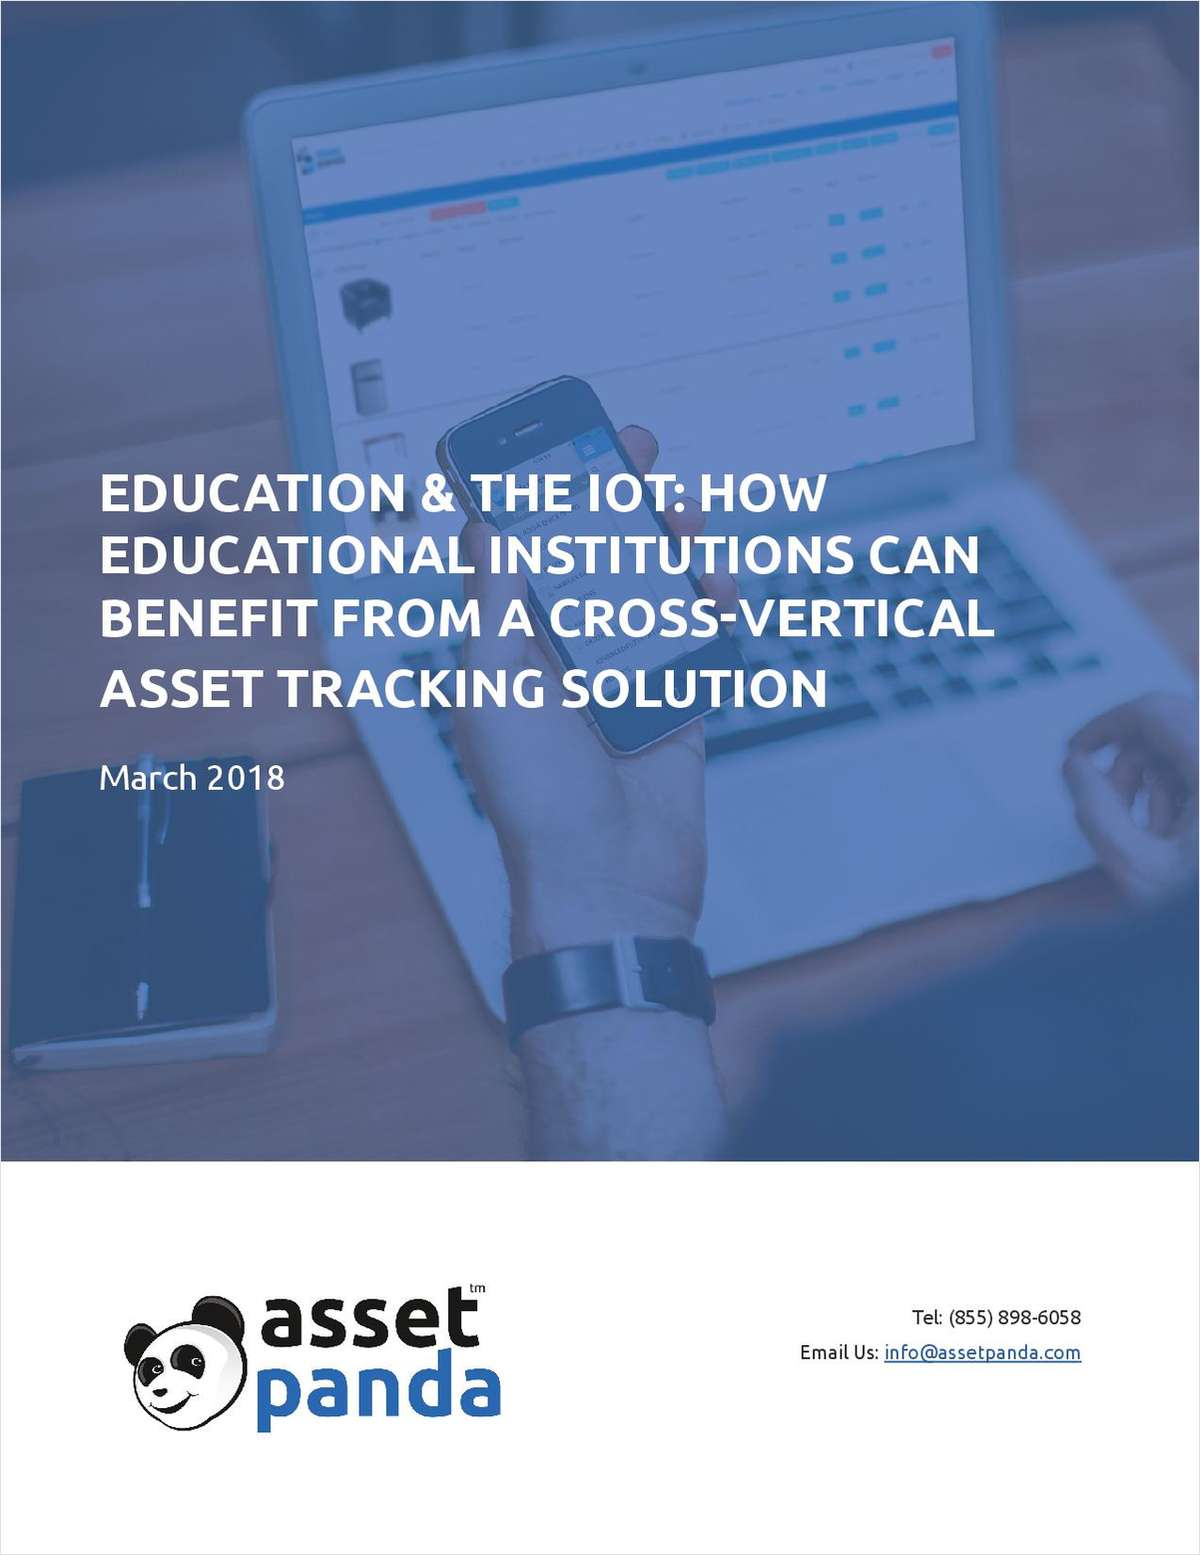 Education & The IoT: How educational institutions can benefit from a cross-vertical asset tracking solution